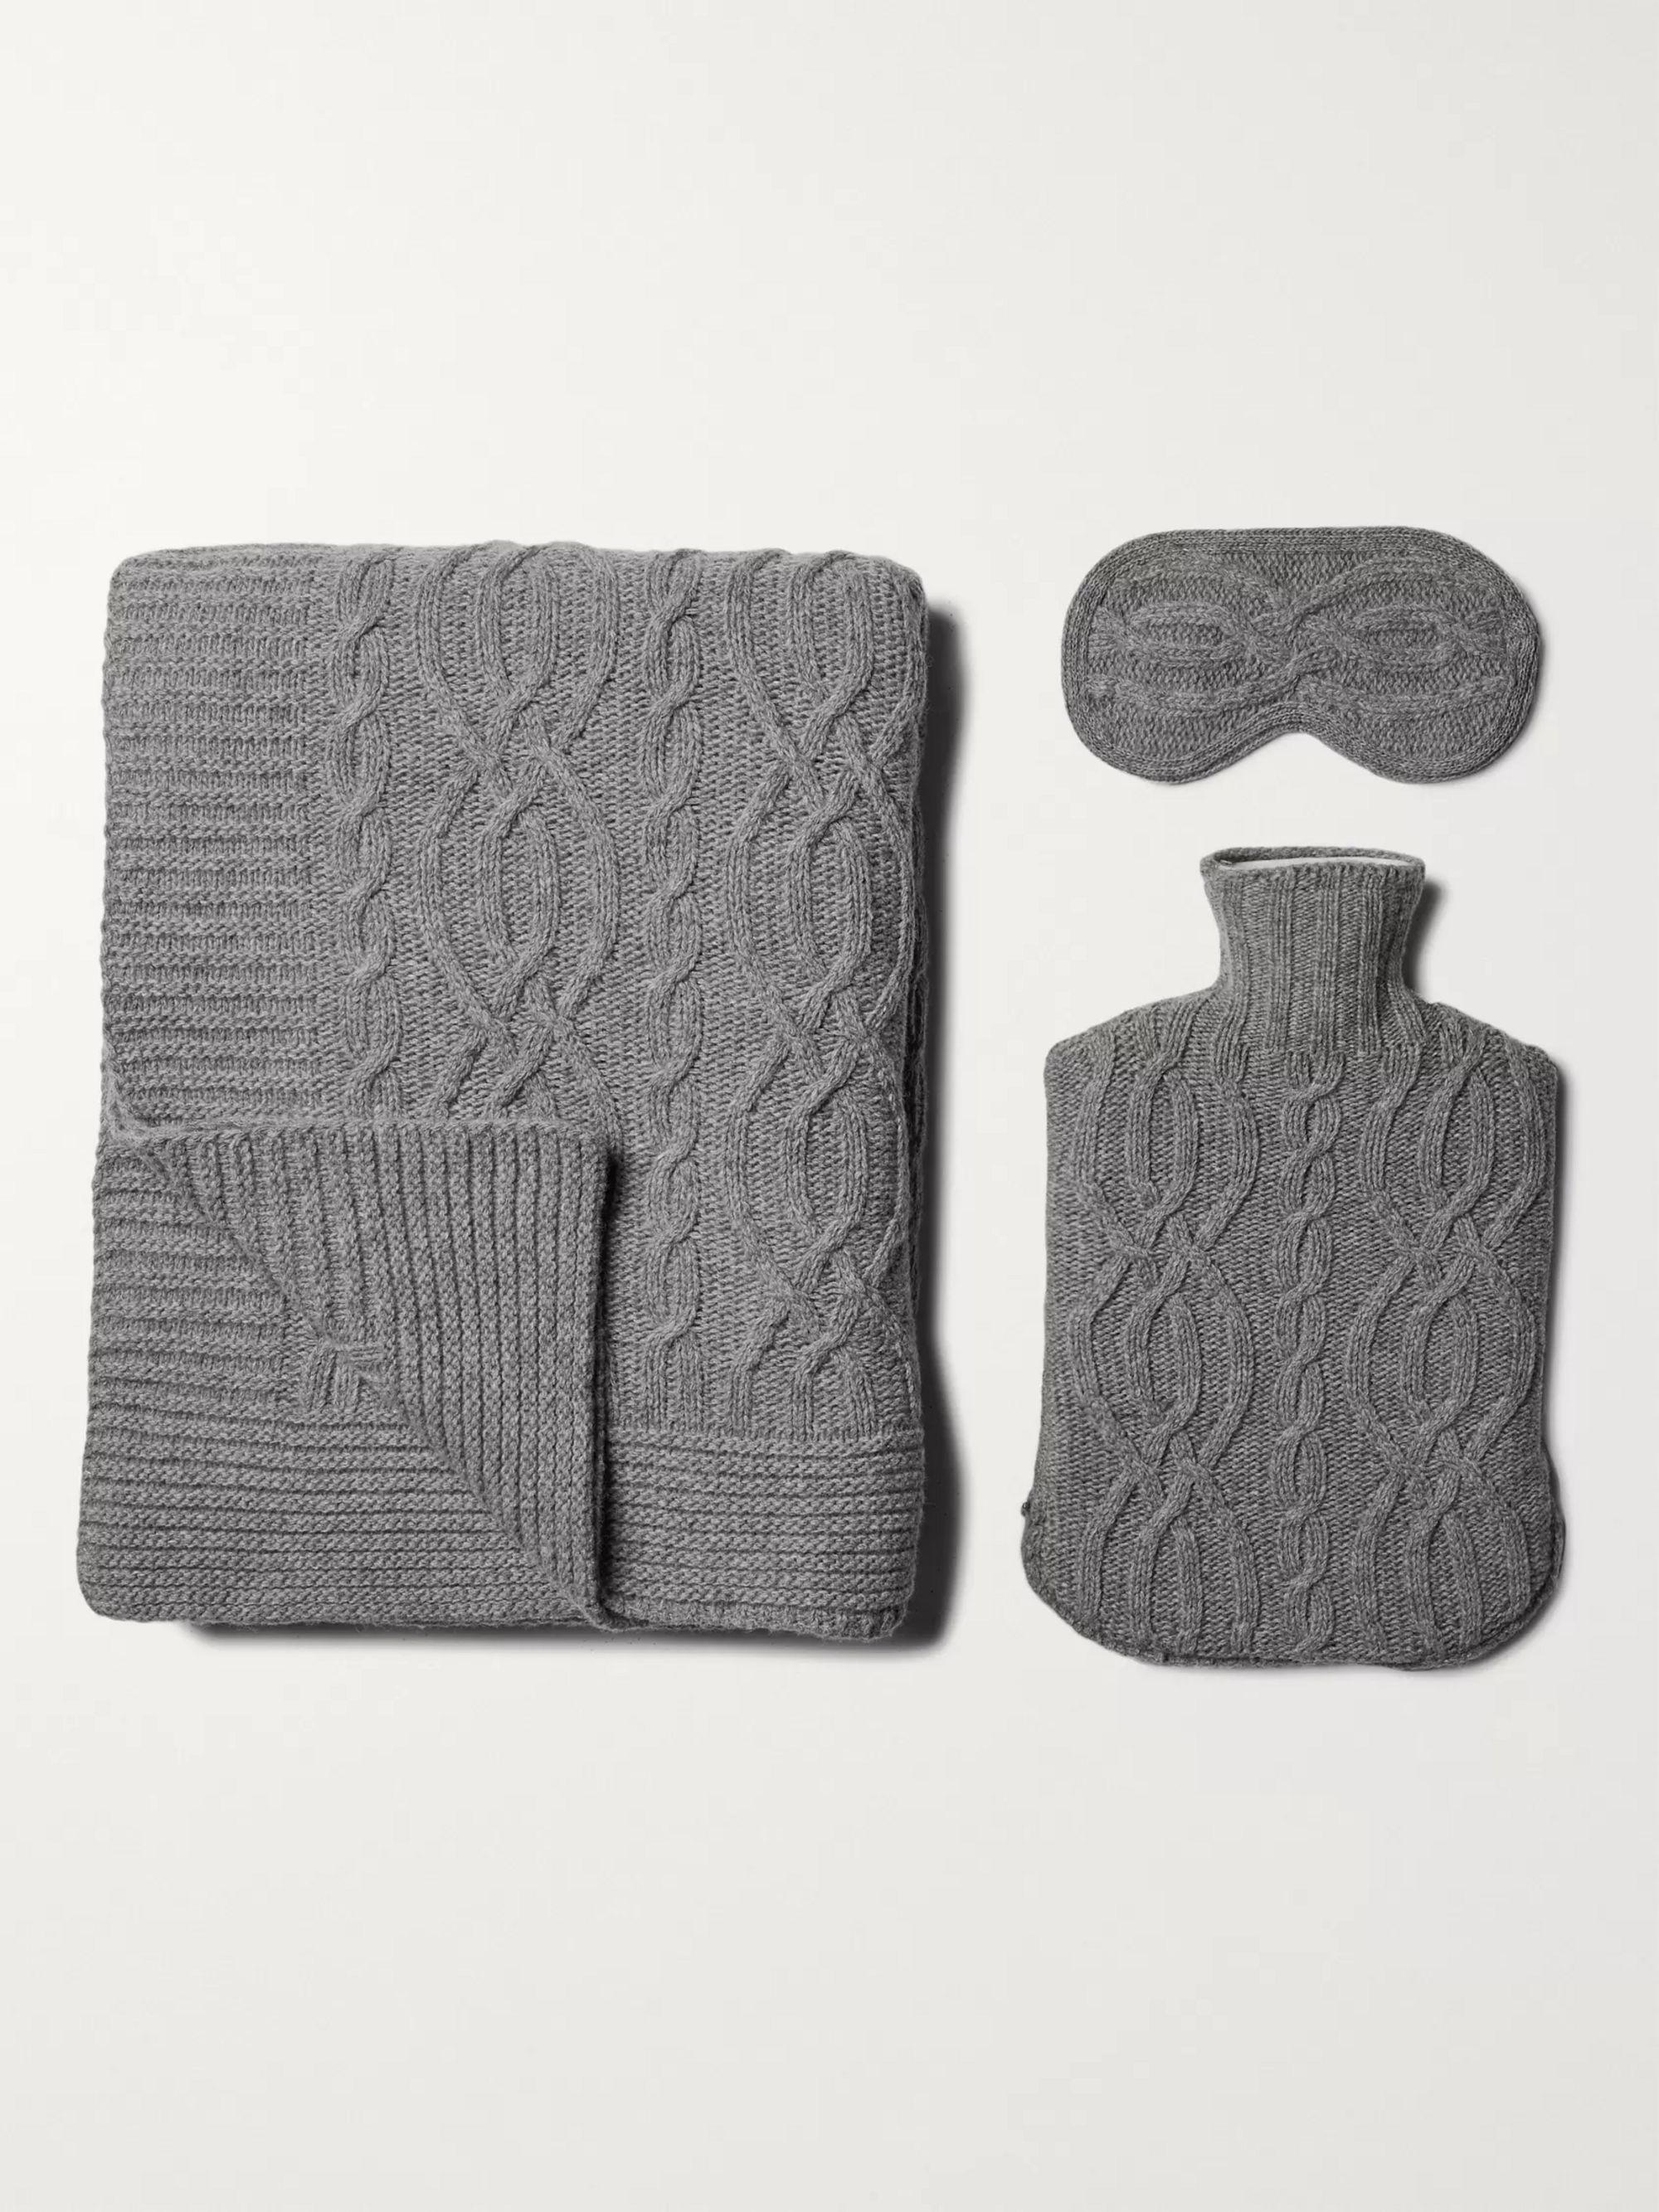 Soho Home Harrison Wool-Blend Sleep Set